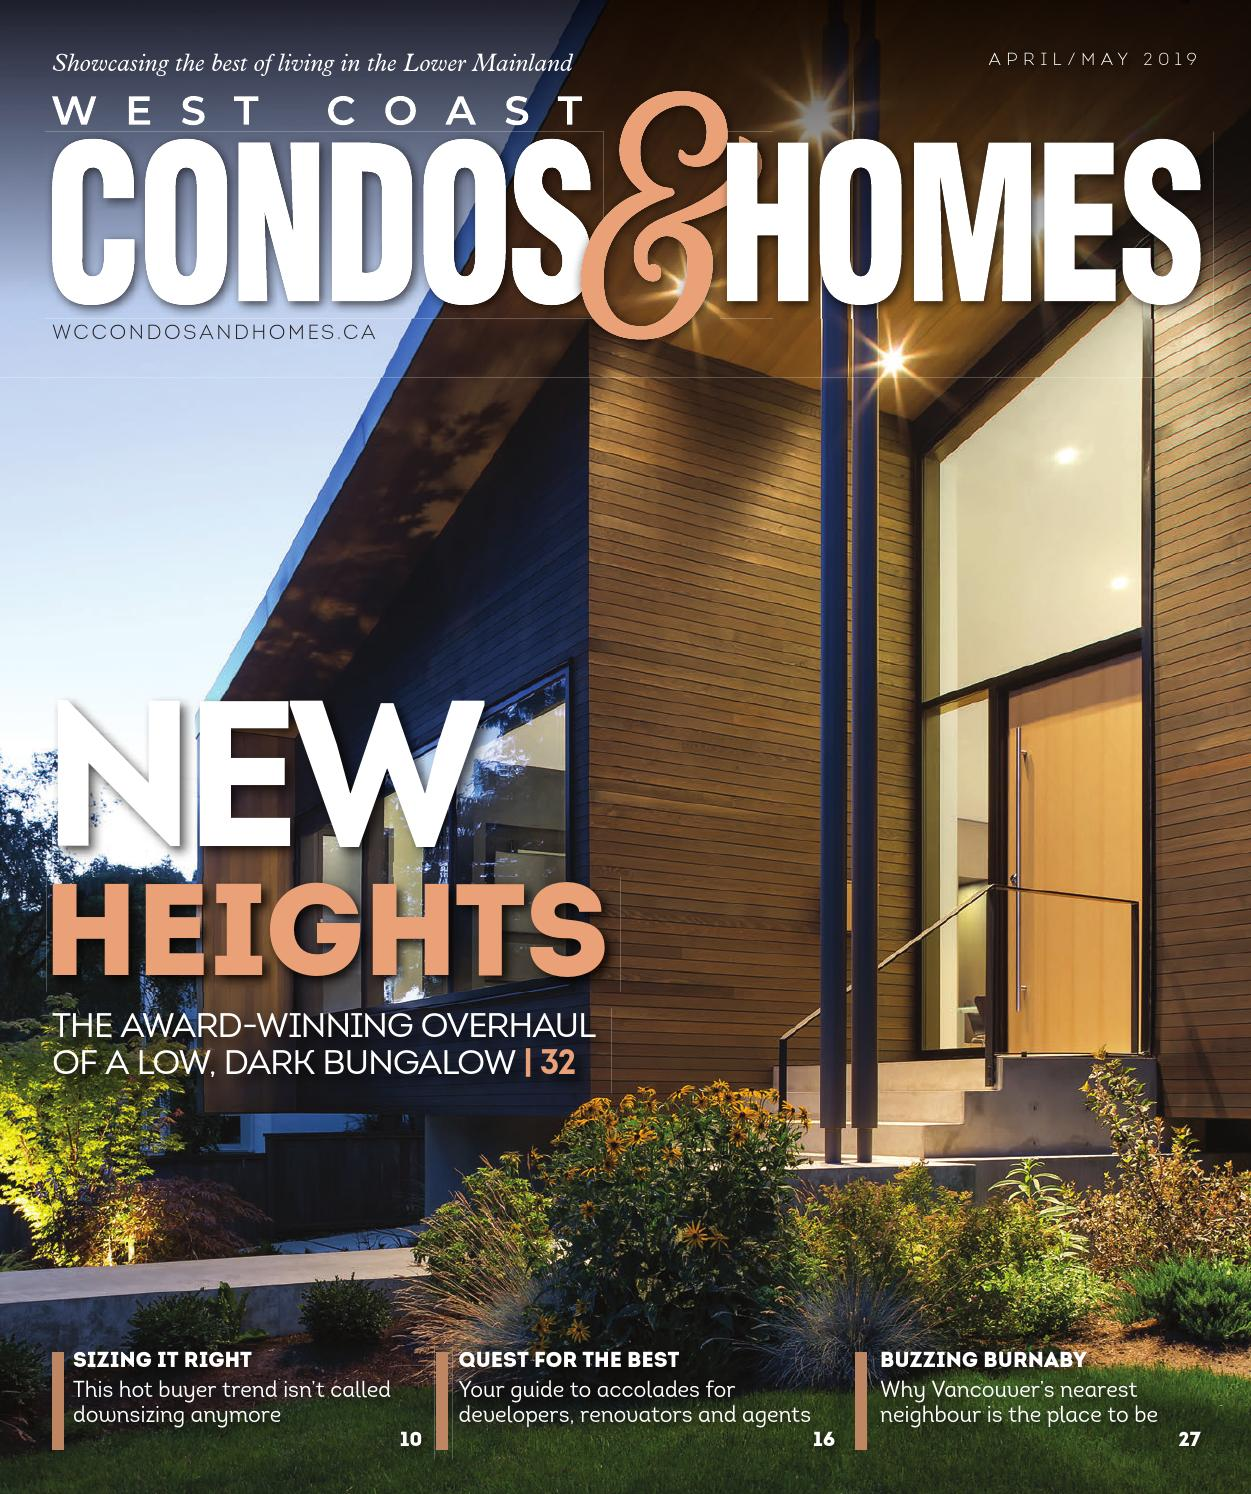 WEST COAST CONDOS & HOMES APRIL/MAY 2019 by Real Estate